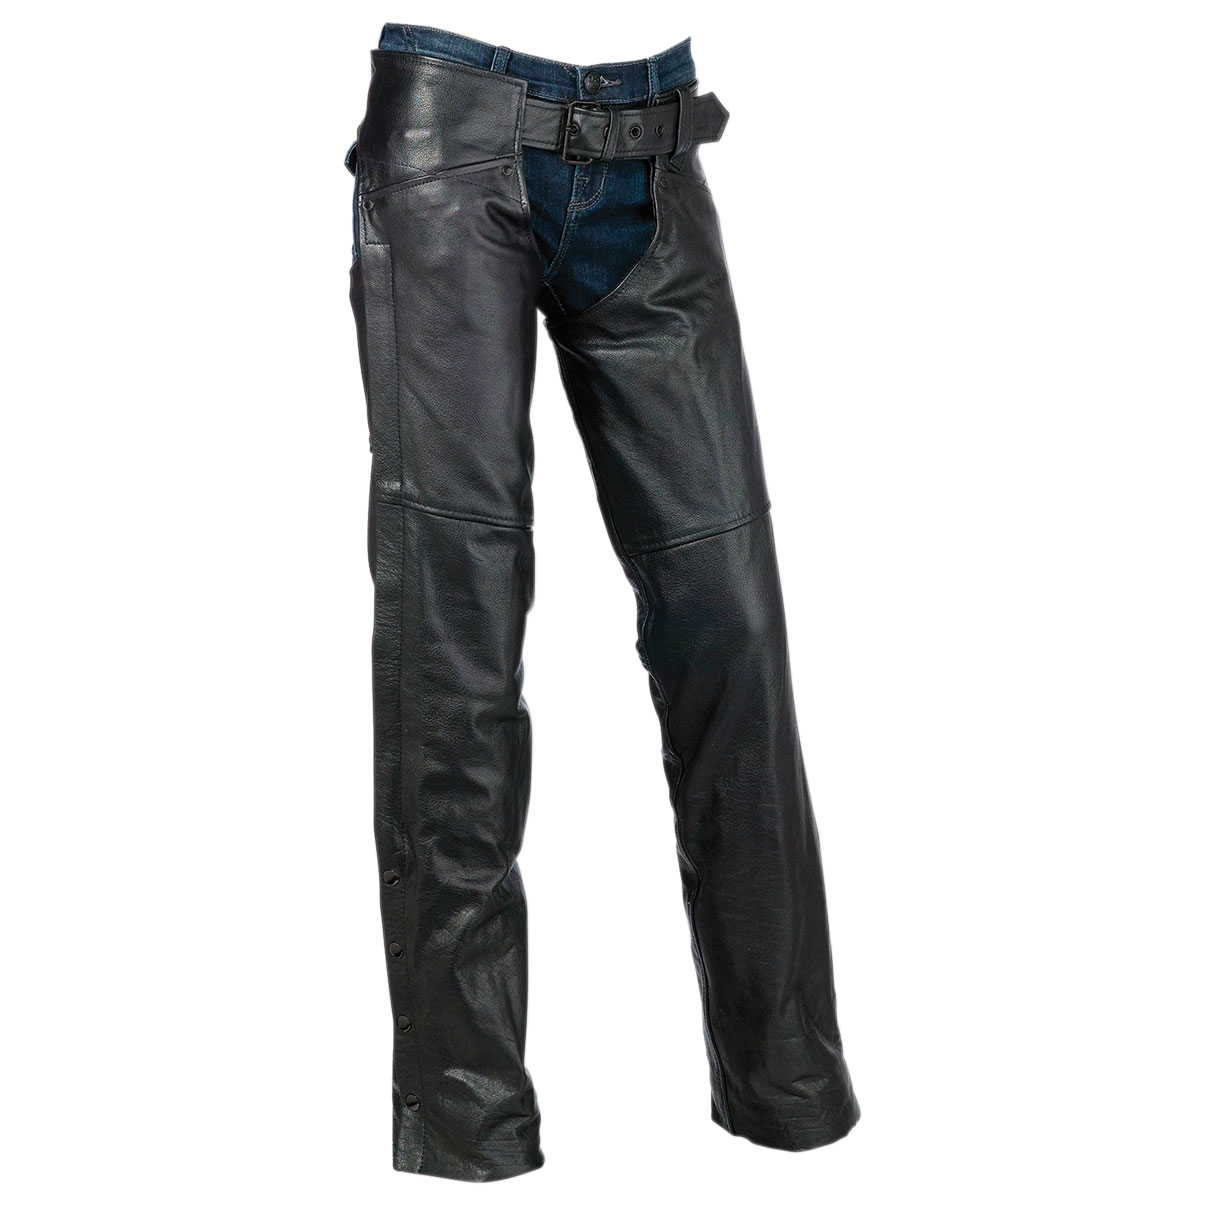 Z1R Women's Sabot Black Leather Chaps